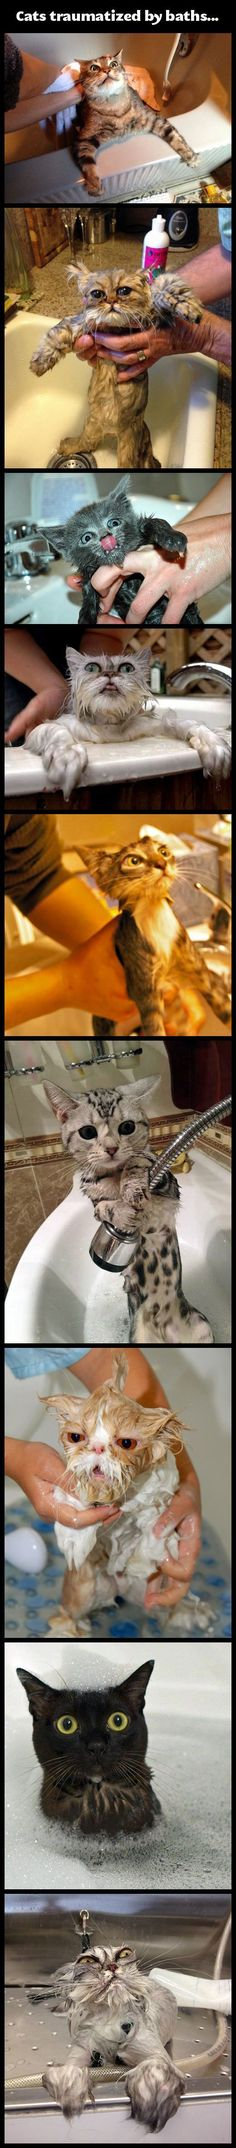 Cats Traumatized By Baths cute animals cat cats adorable animal kittens pets lol kitten humor funny pictures funny animals funny cats: